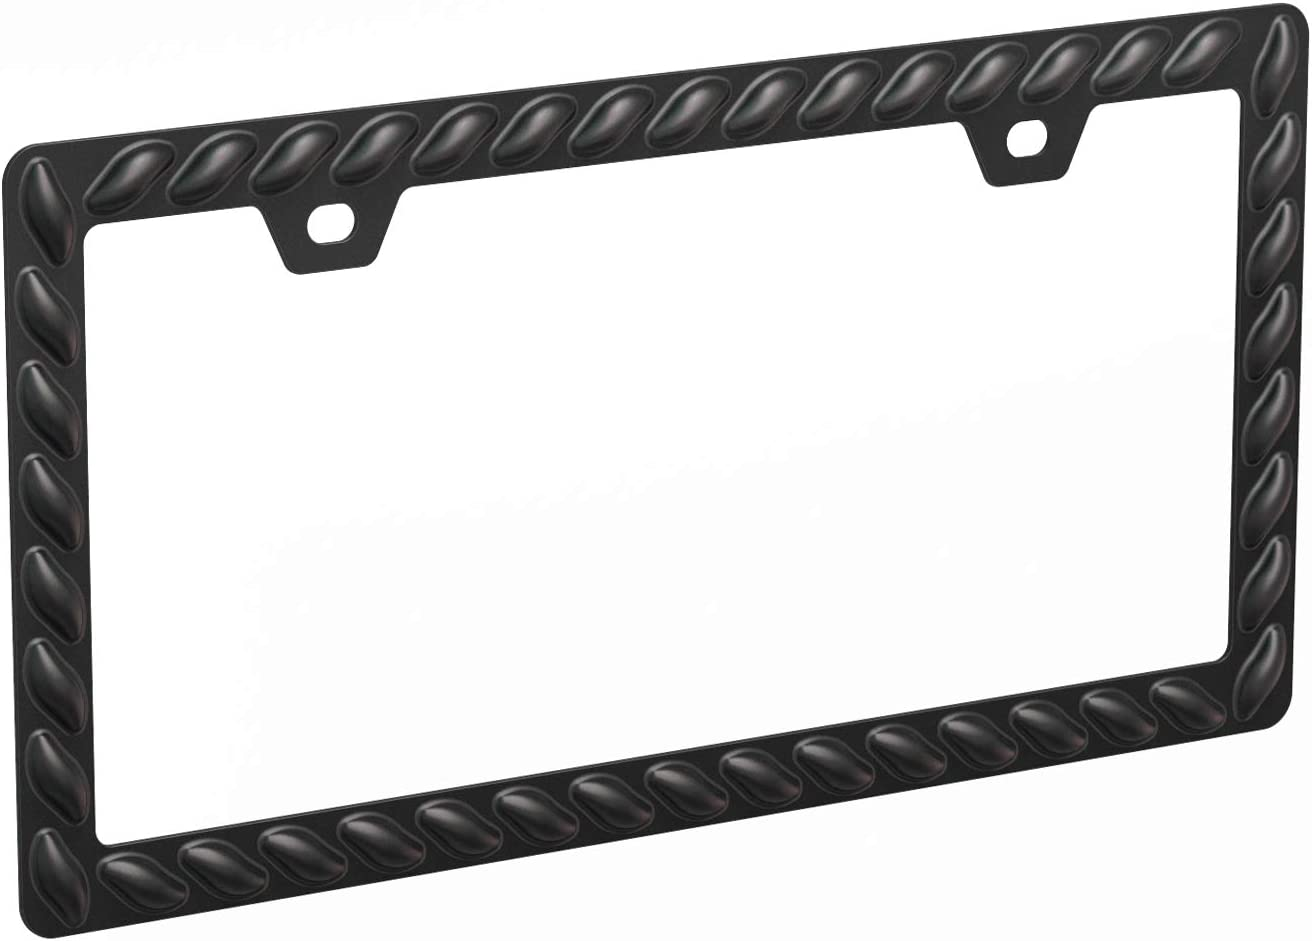 Pack of 2, Black Sgooky 3D License Plate Frame Lasso Pattern License Plate Holder with Extra Heavy Powder Coating